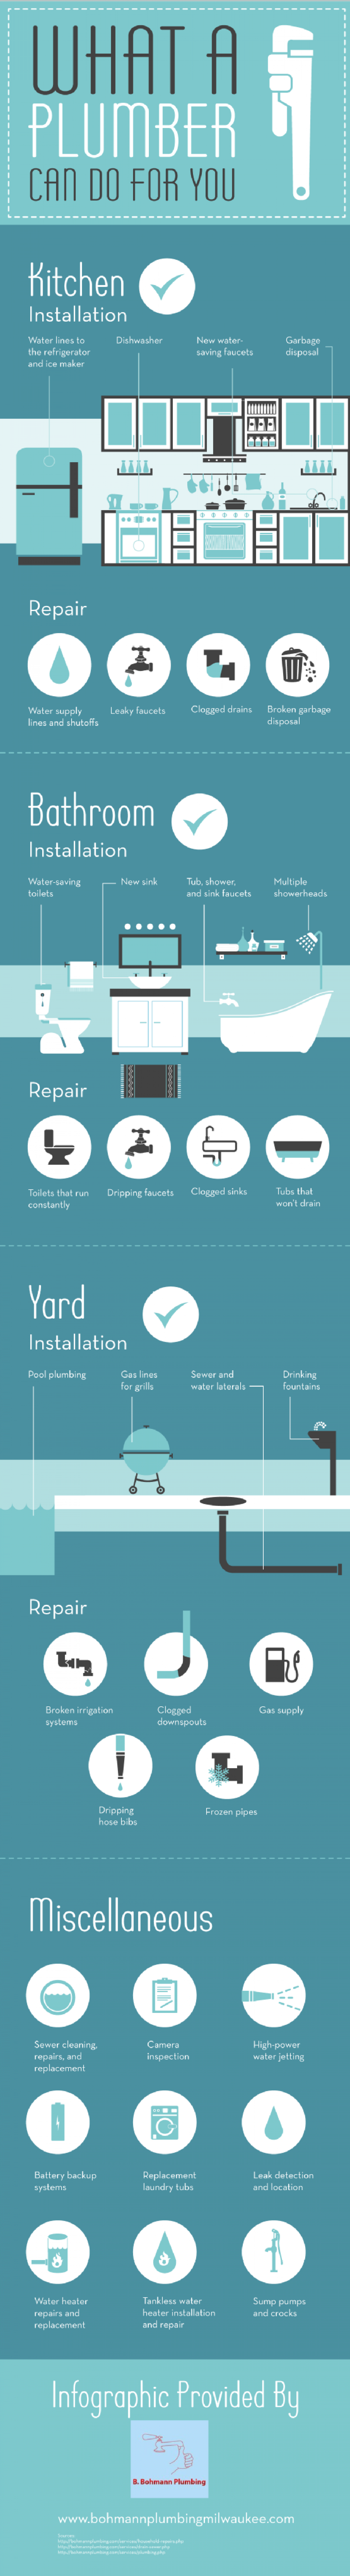 What A Plumber Can Do For You Infographic